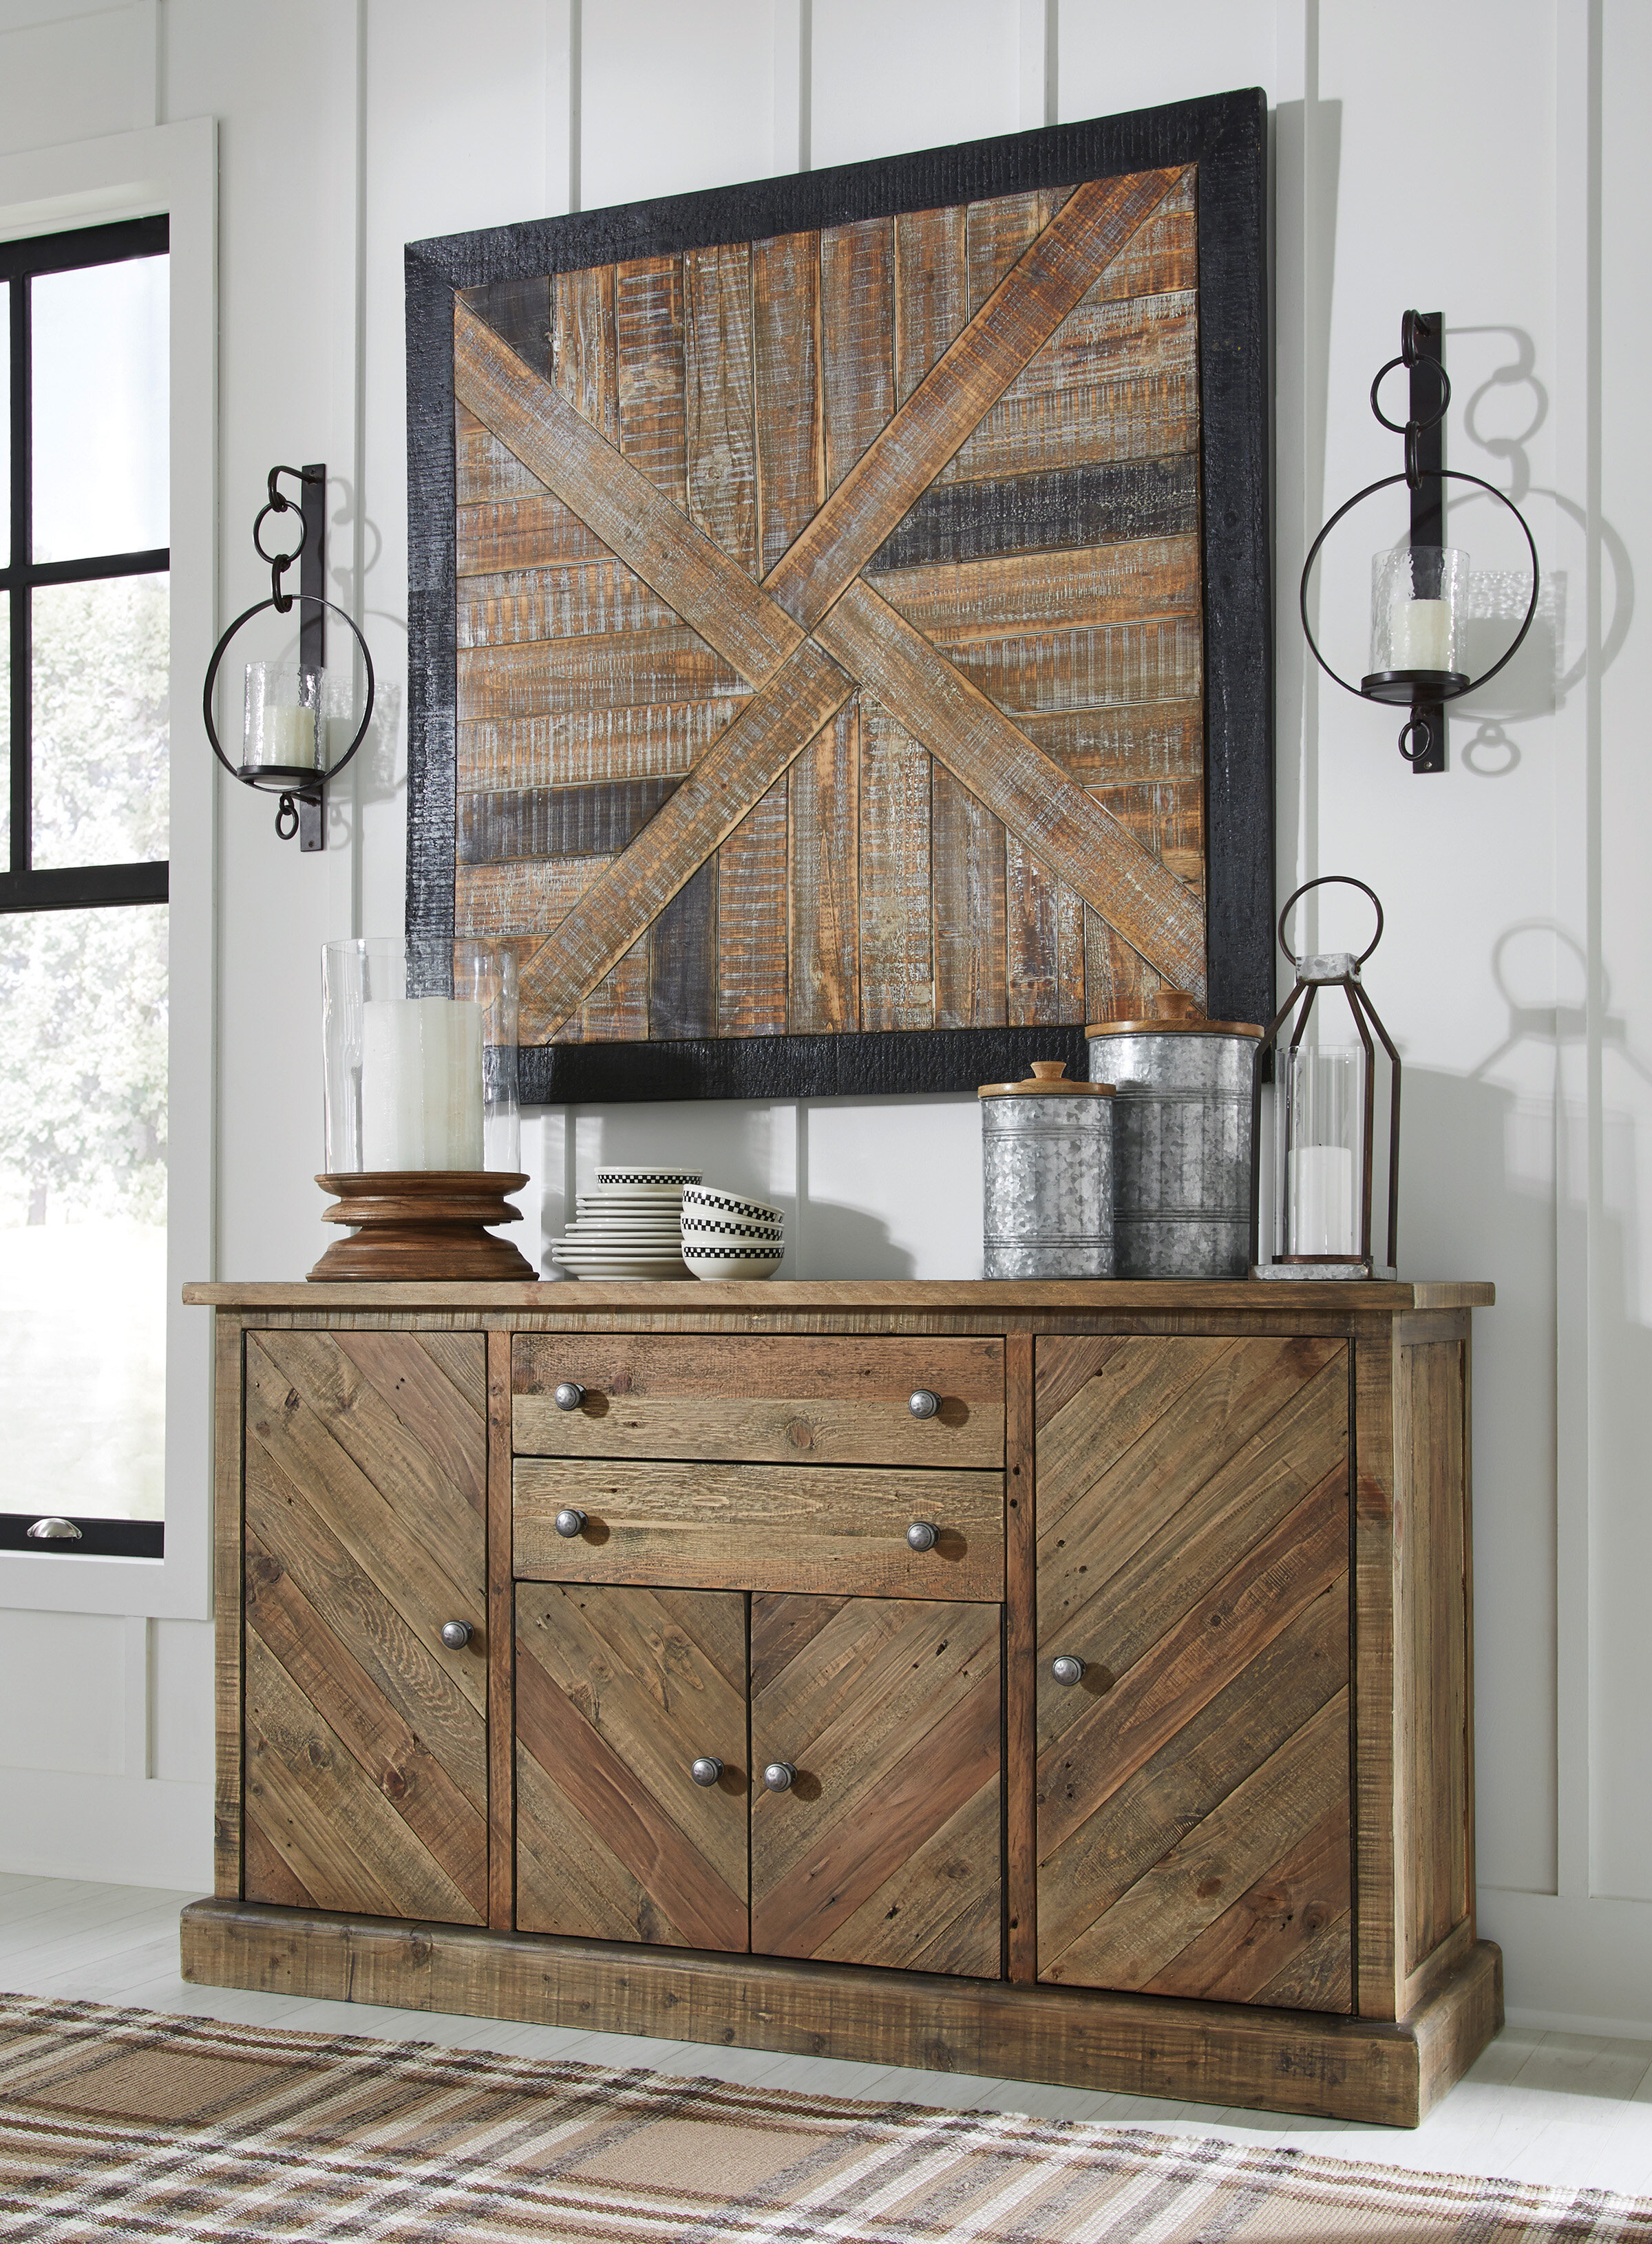 Jessamine Sideboard & Reviews | Joss & Main Pertaining To Most Current Saint Gratien Sideboards (#8 of 20)